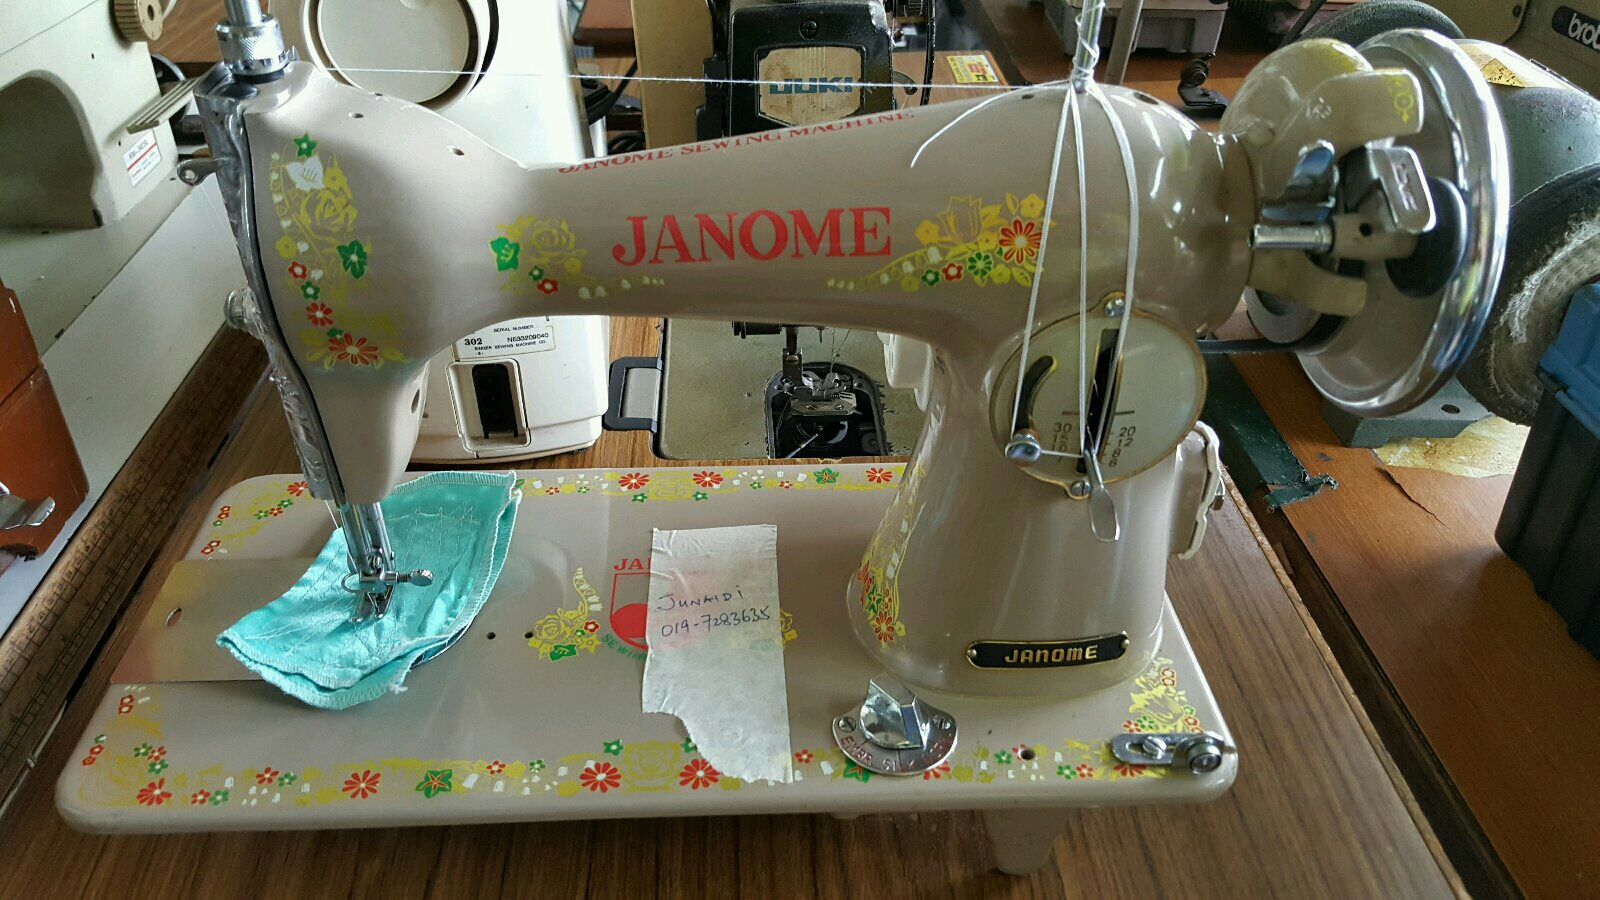 Anti janome sewing machine